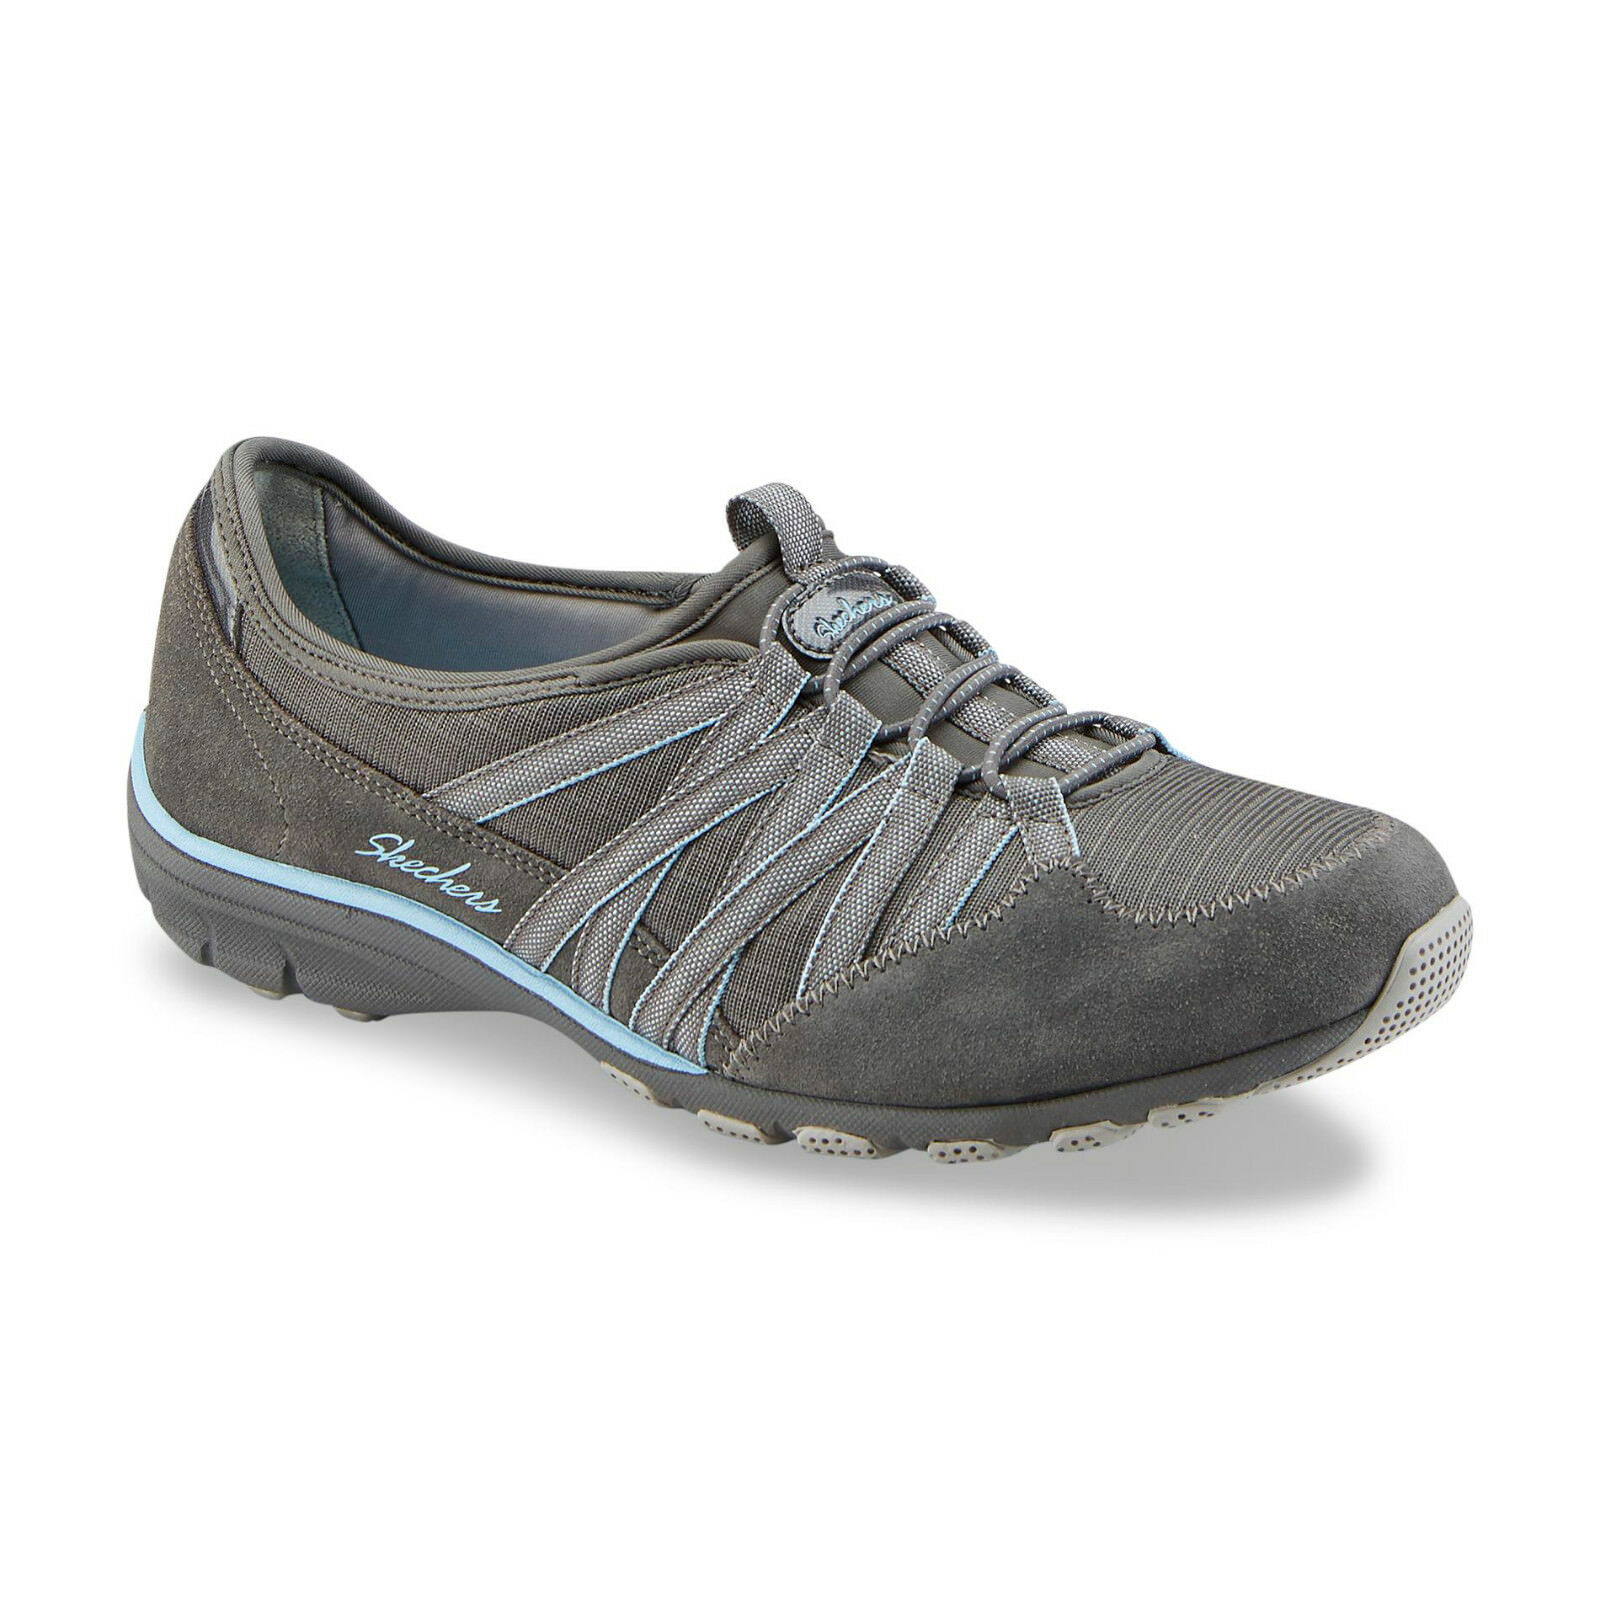 Womens Skechers Relaxed Fit: Conversations Holding Aces CCLB 22551 #BR